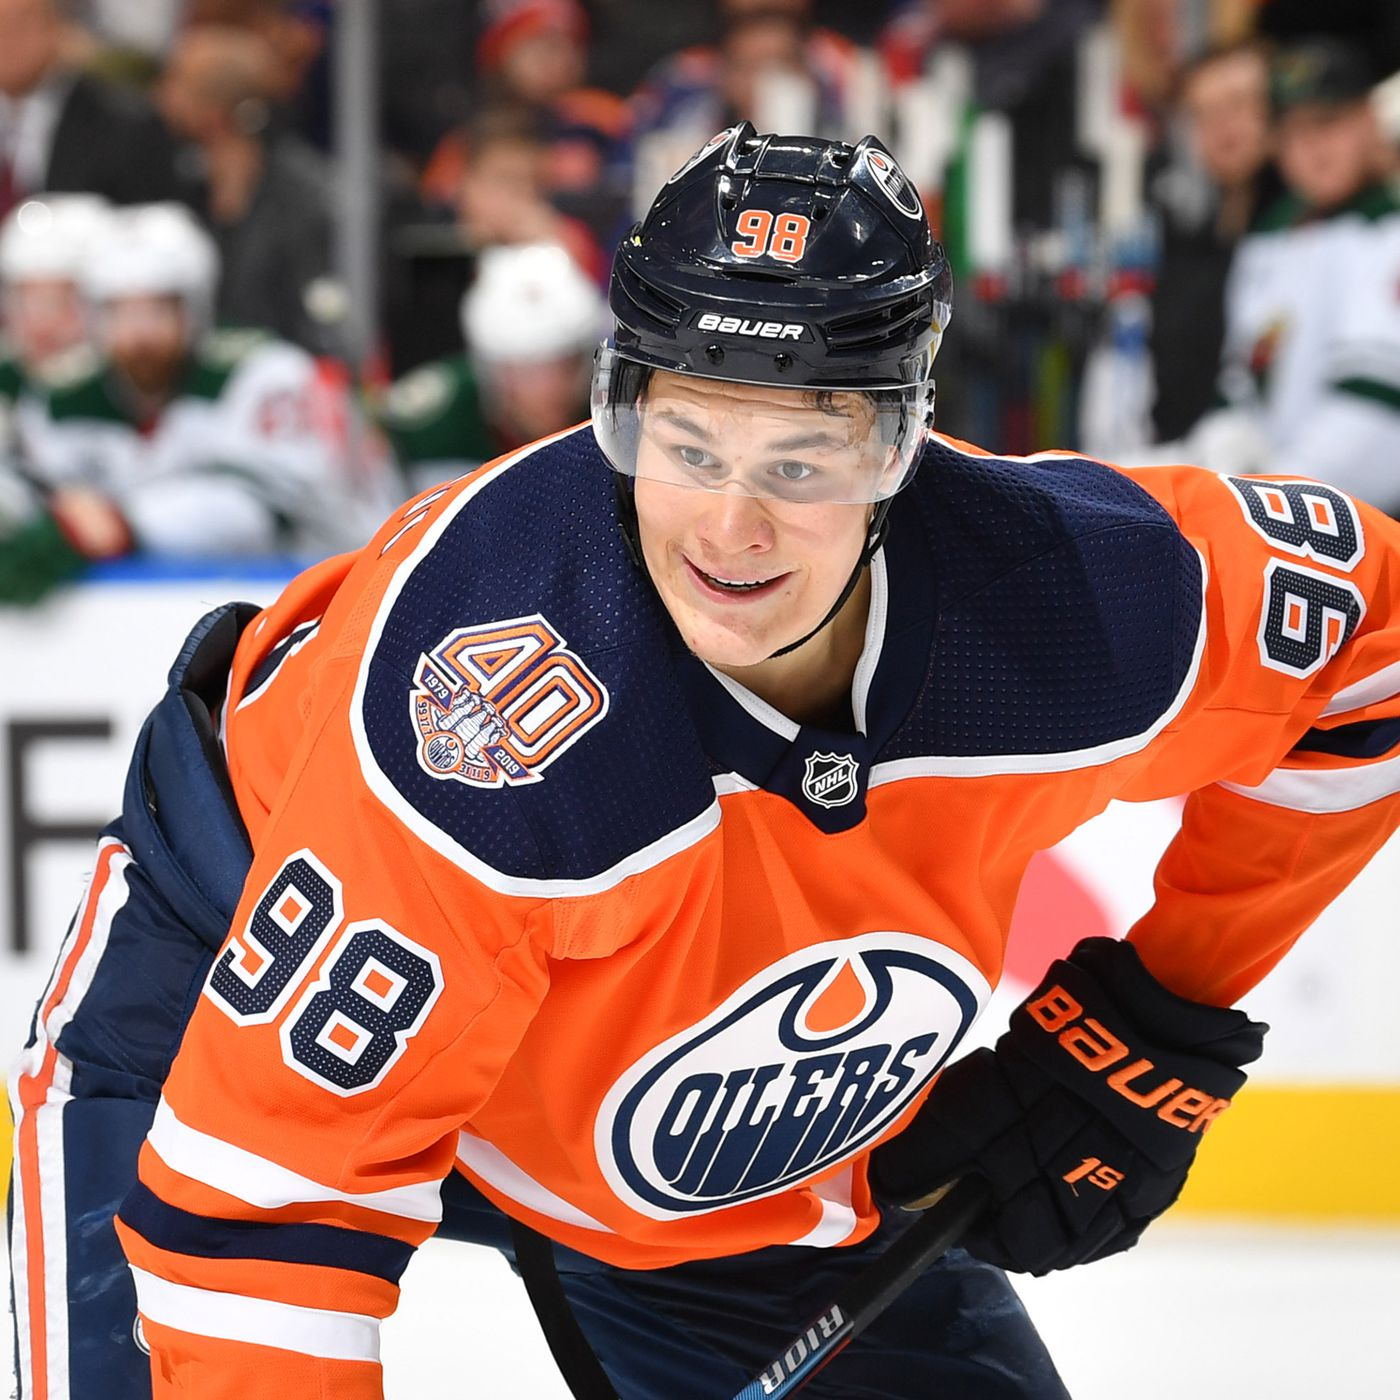 Report: Jesse Puljujarvi Expected To Return To Oilers For 2020-21 ...